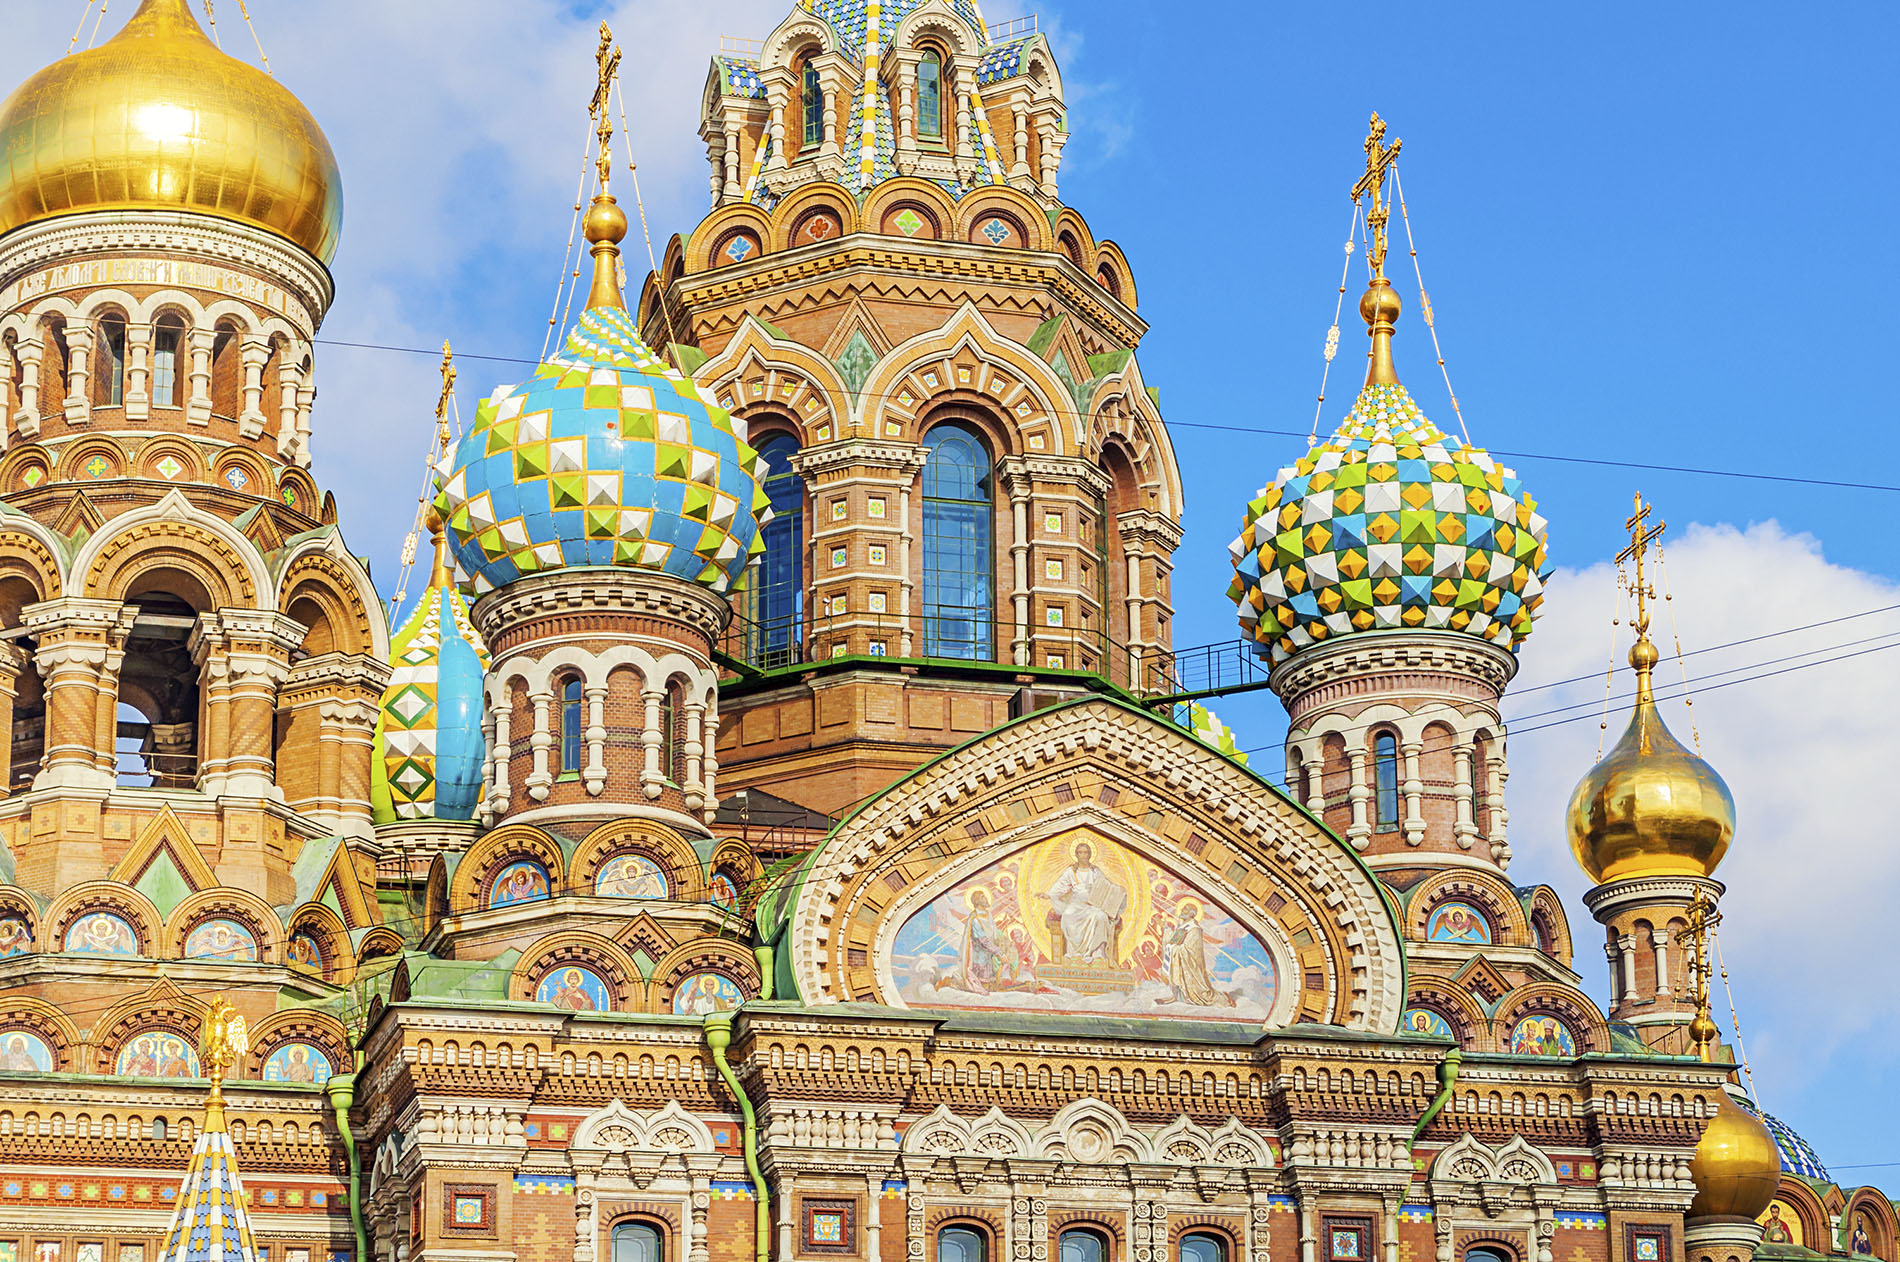 The Church of Our Savior on Spilled Blood in St Petersburg